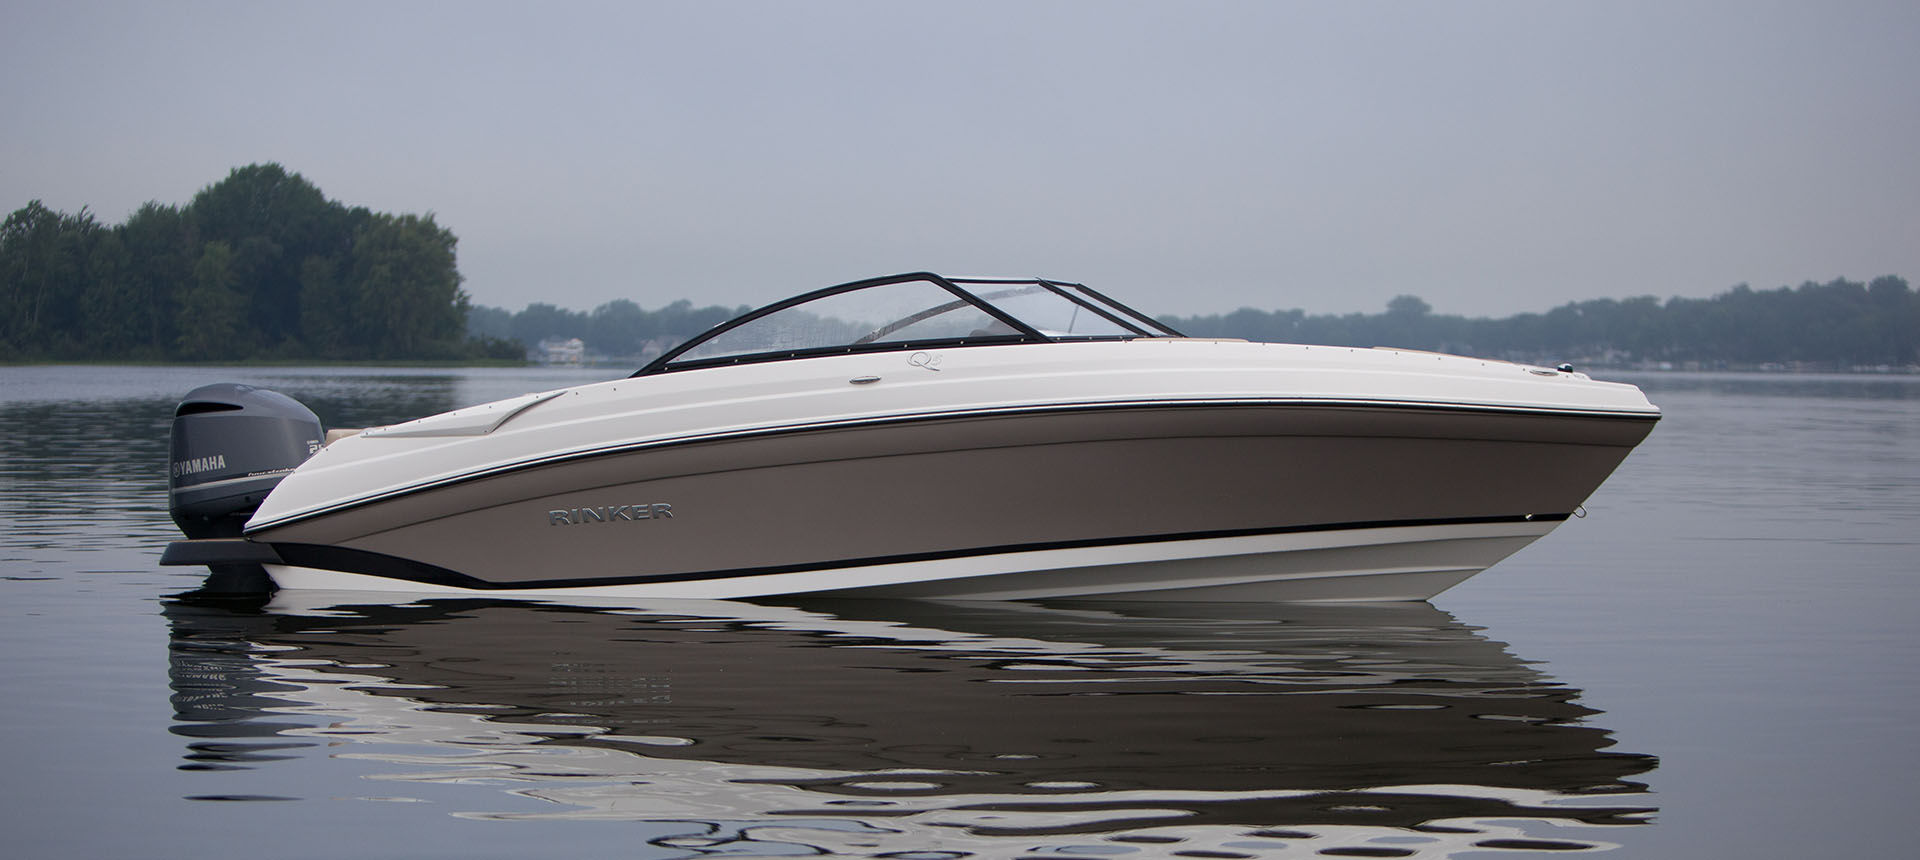 Pic of Q5 Outboard underwayoff